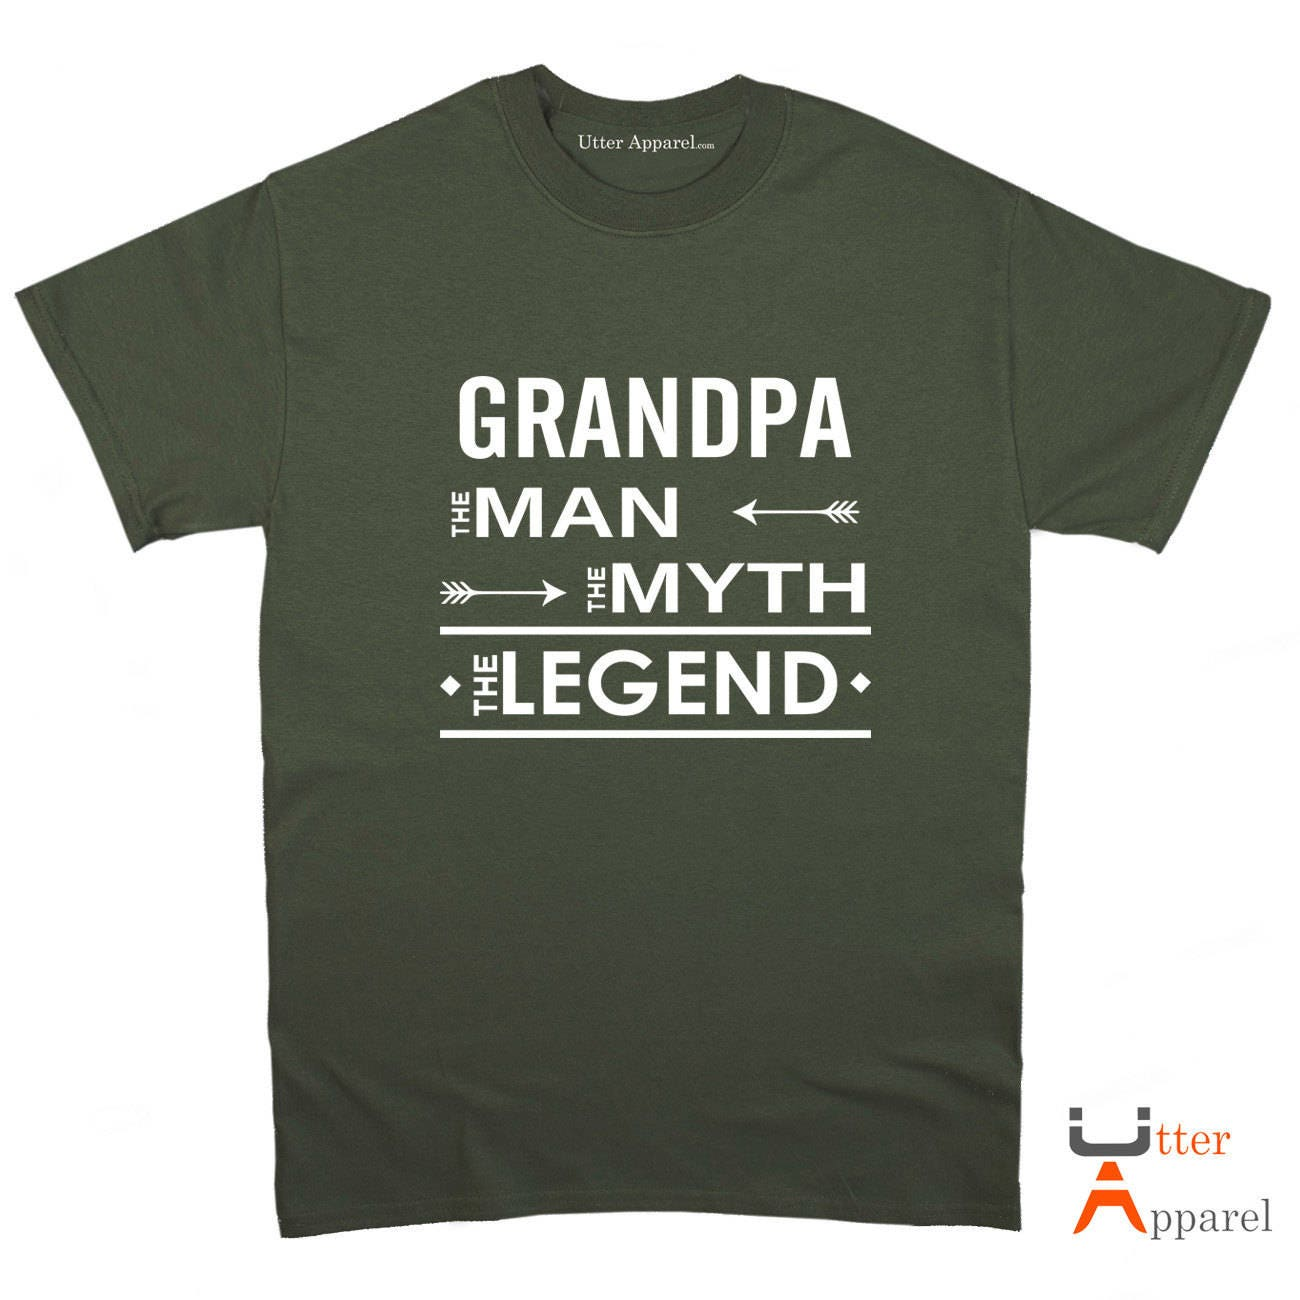 Christmas Gifts for Grandpa, gifts for grandad, Grandpa shirt ...